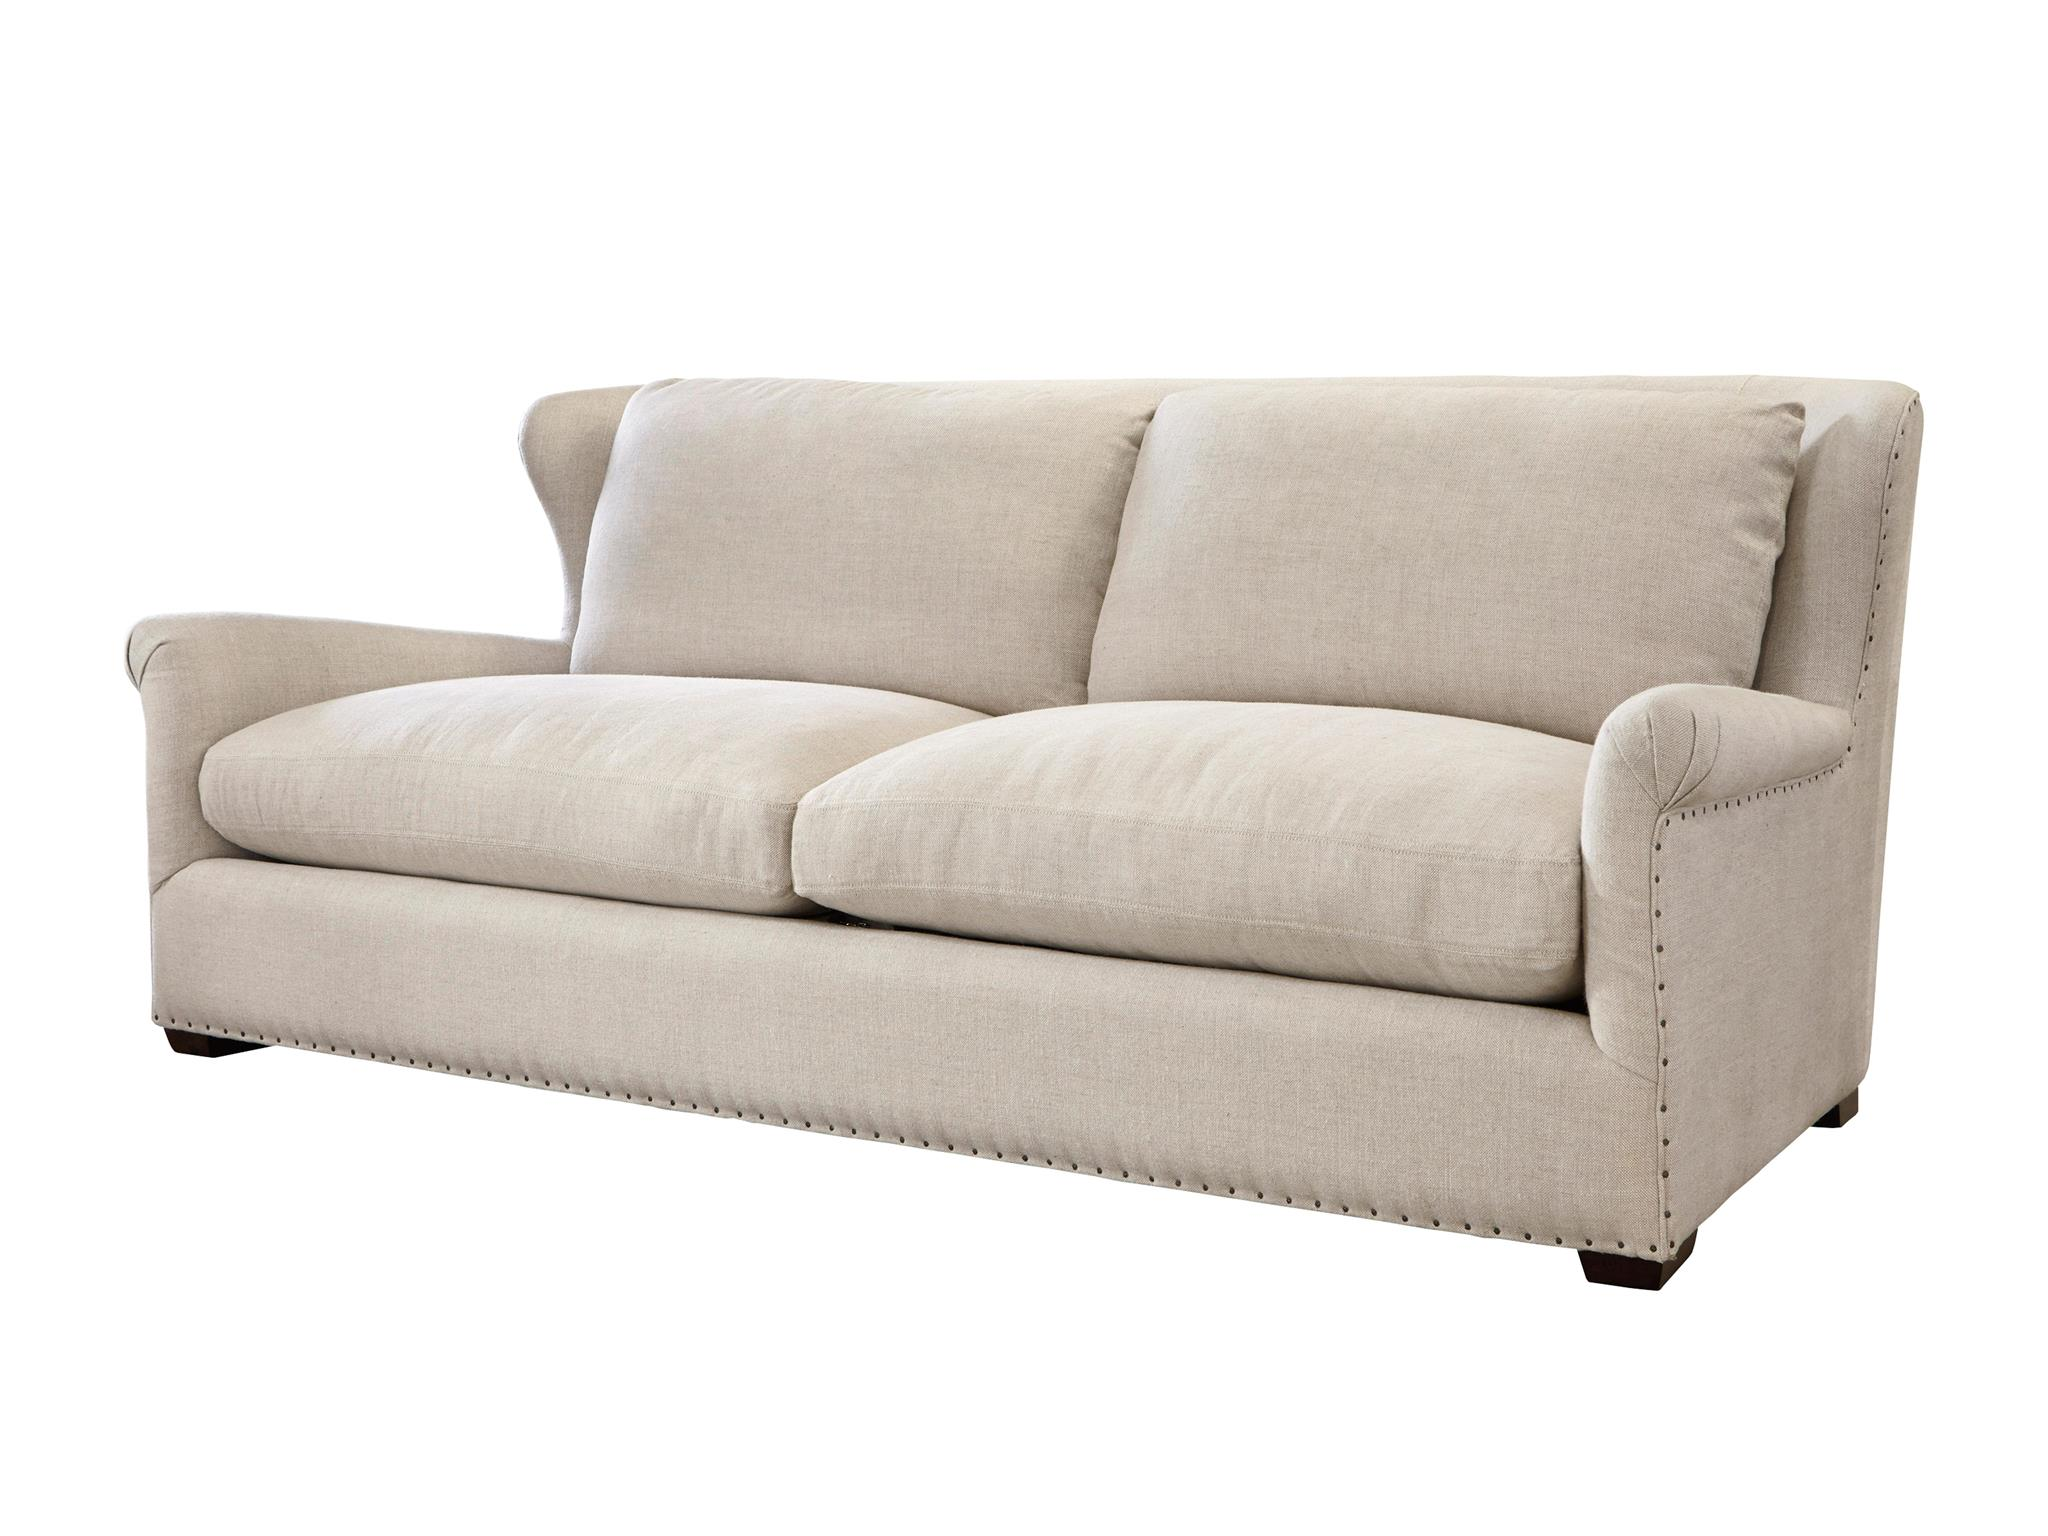 how to clean belgian linen sofa turquoise sleeper universal furniture moderne muse haven